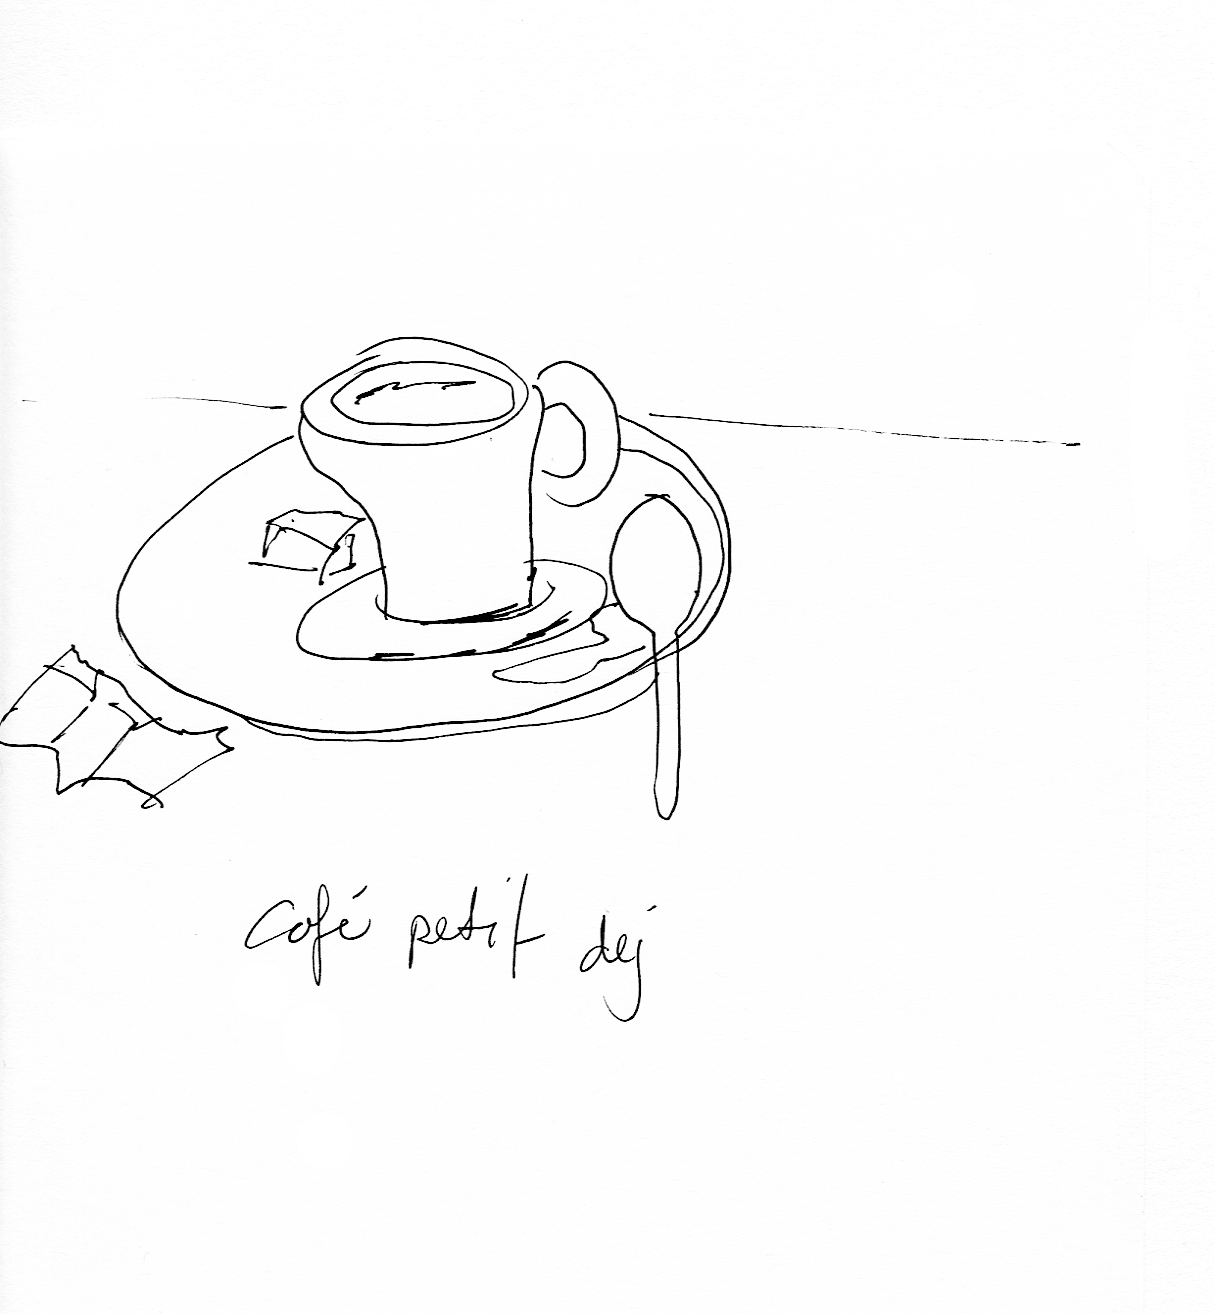 art every day number 54 / drawing / illustration / café petit déj